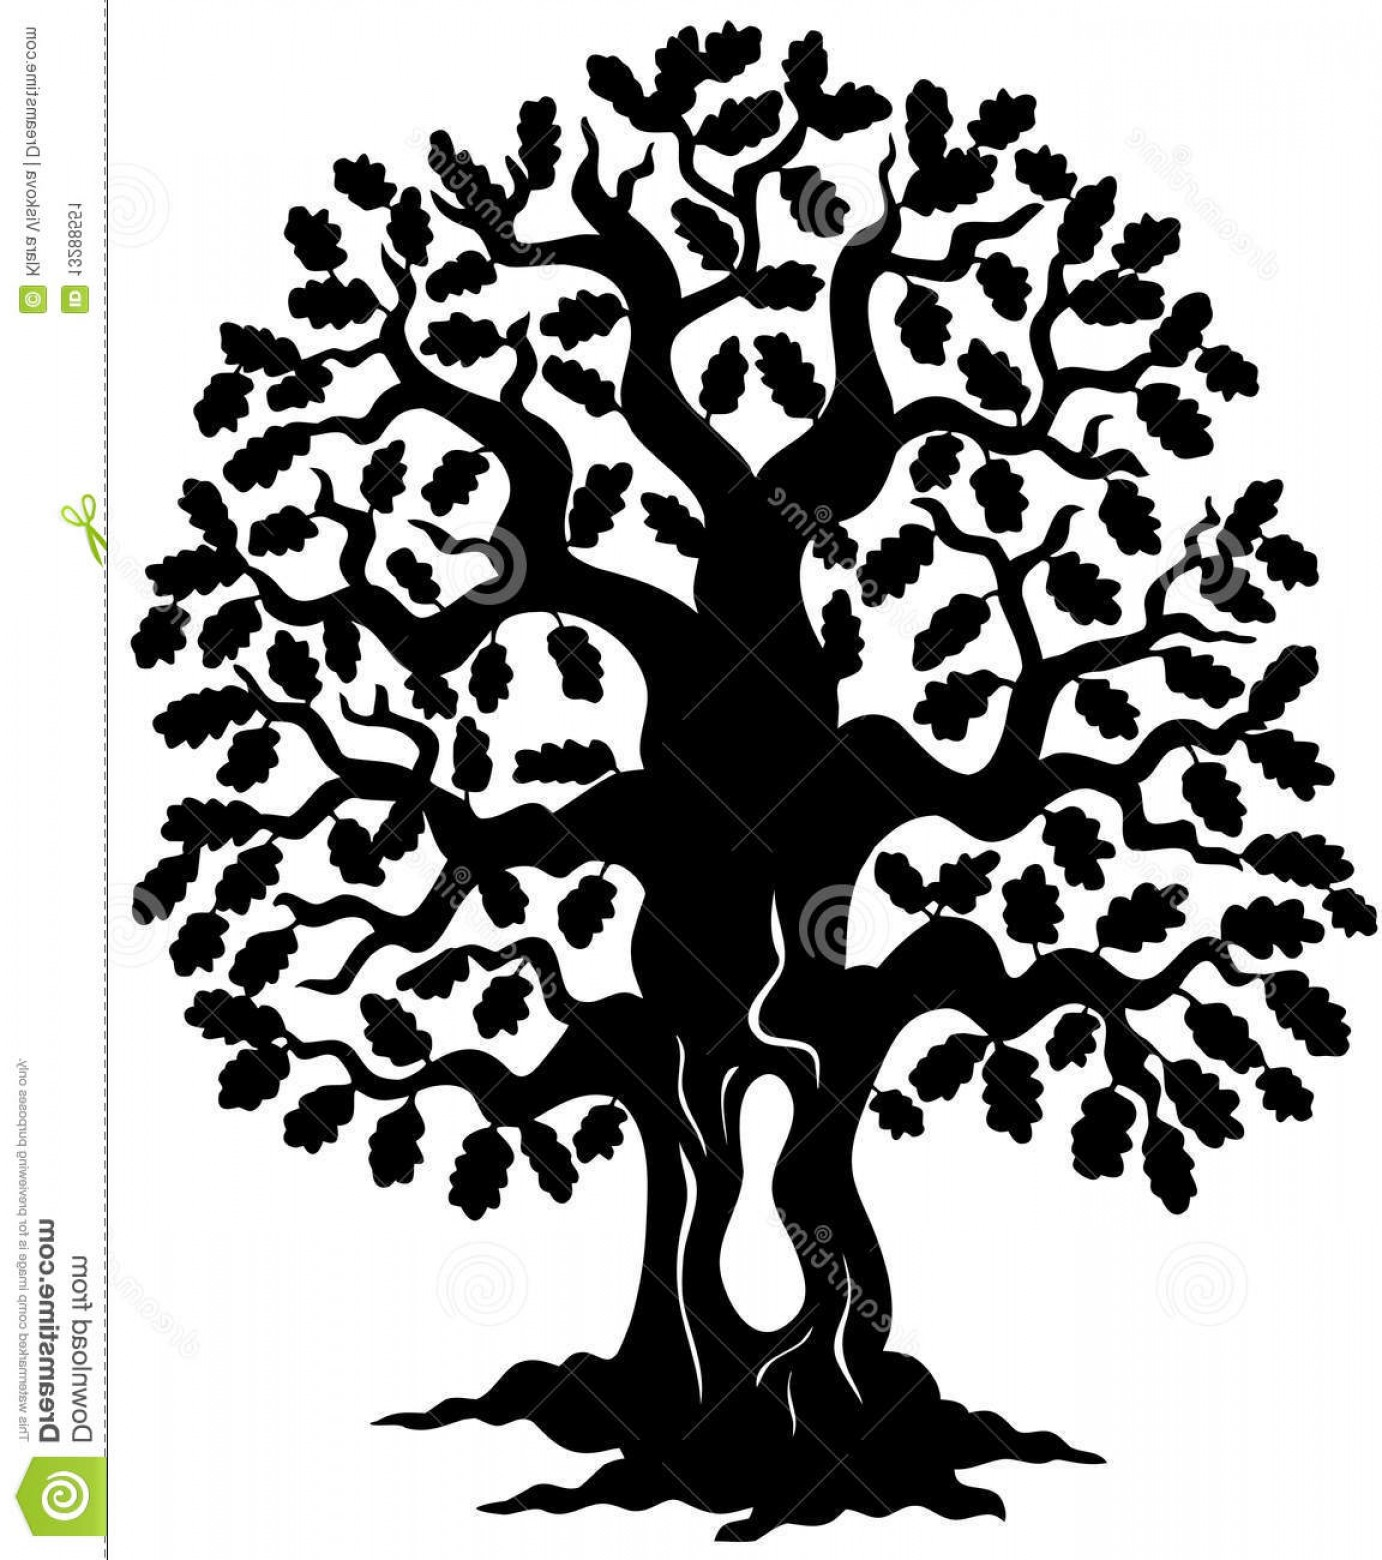 Oak Tree Silhouette Vector Graphics: Stock Image Oak Tree Silhouette Image